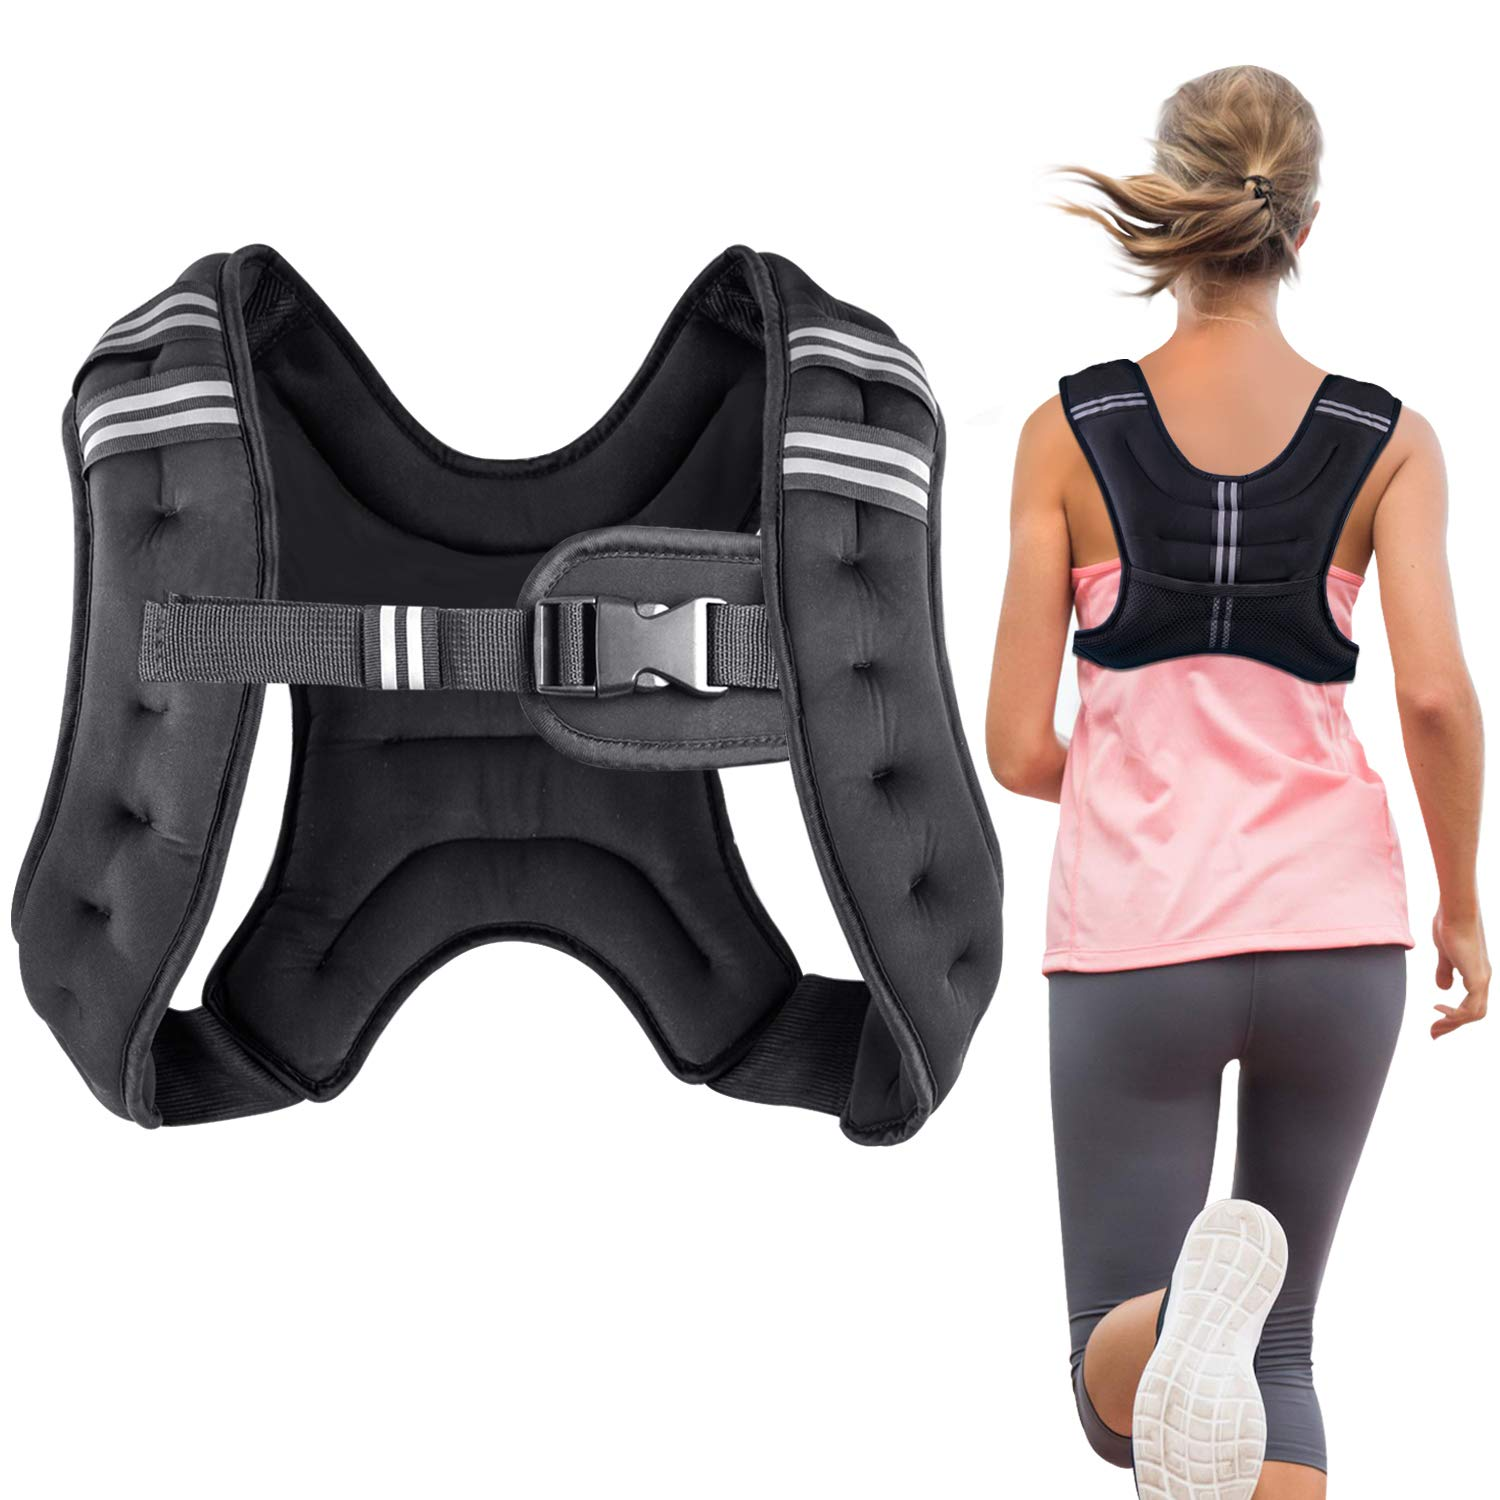 Henkelion Running Weight Vest for Men Women Kids Weights Included, Body Weight Vests for Training Workout, Jogging, Cardio, Walking, Elite Adjustable Weighted Vest Workout Equipment - 12 Lbs